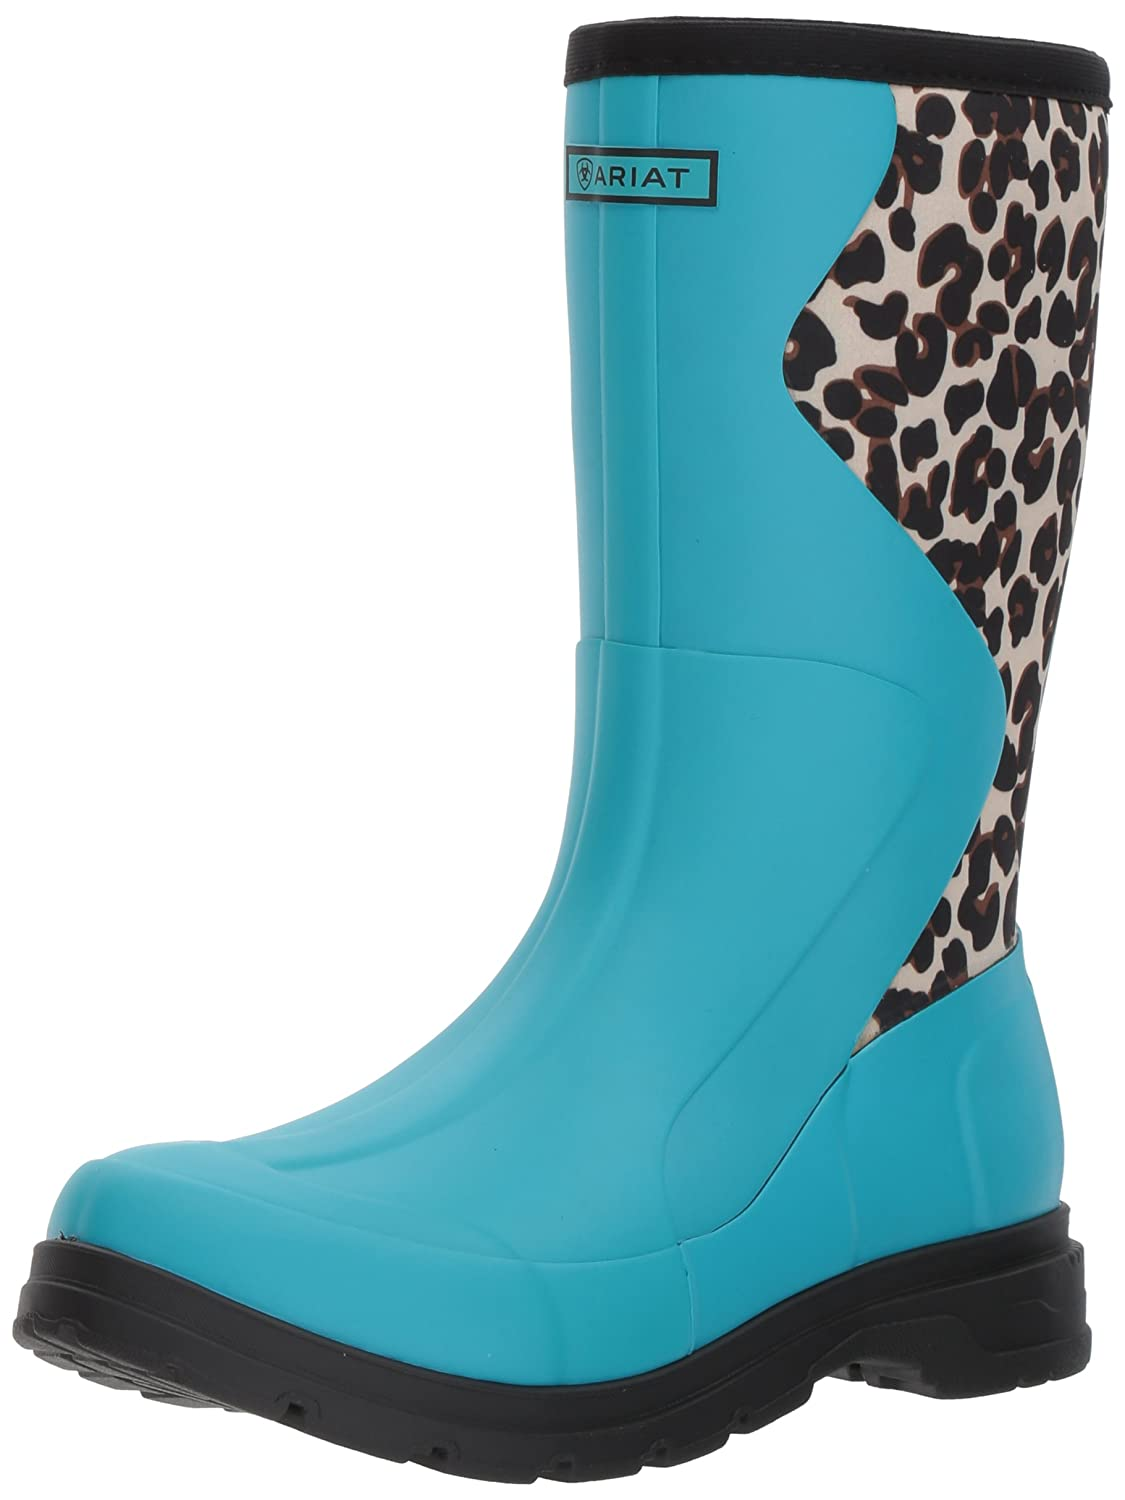 Ariat Women's Springfield Rubber Work Boot B01MTELDVZ 7 B(M) US|Bright Aqua